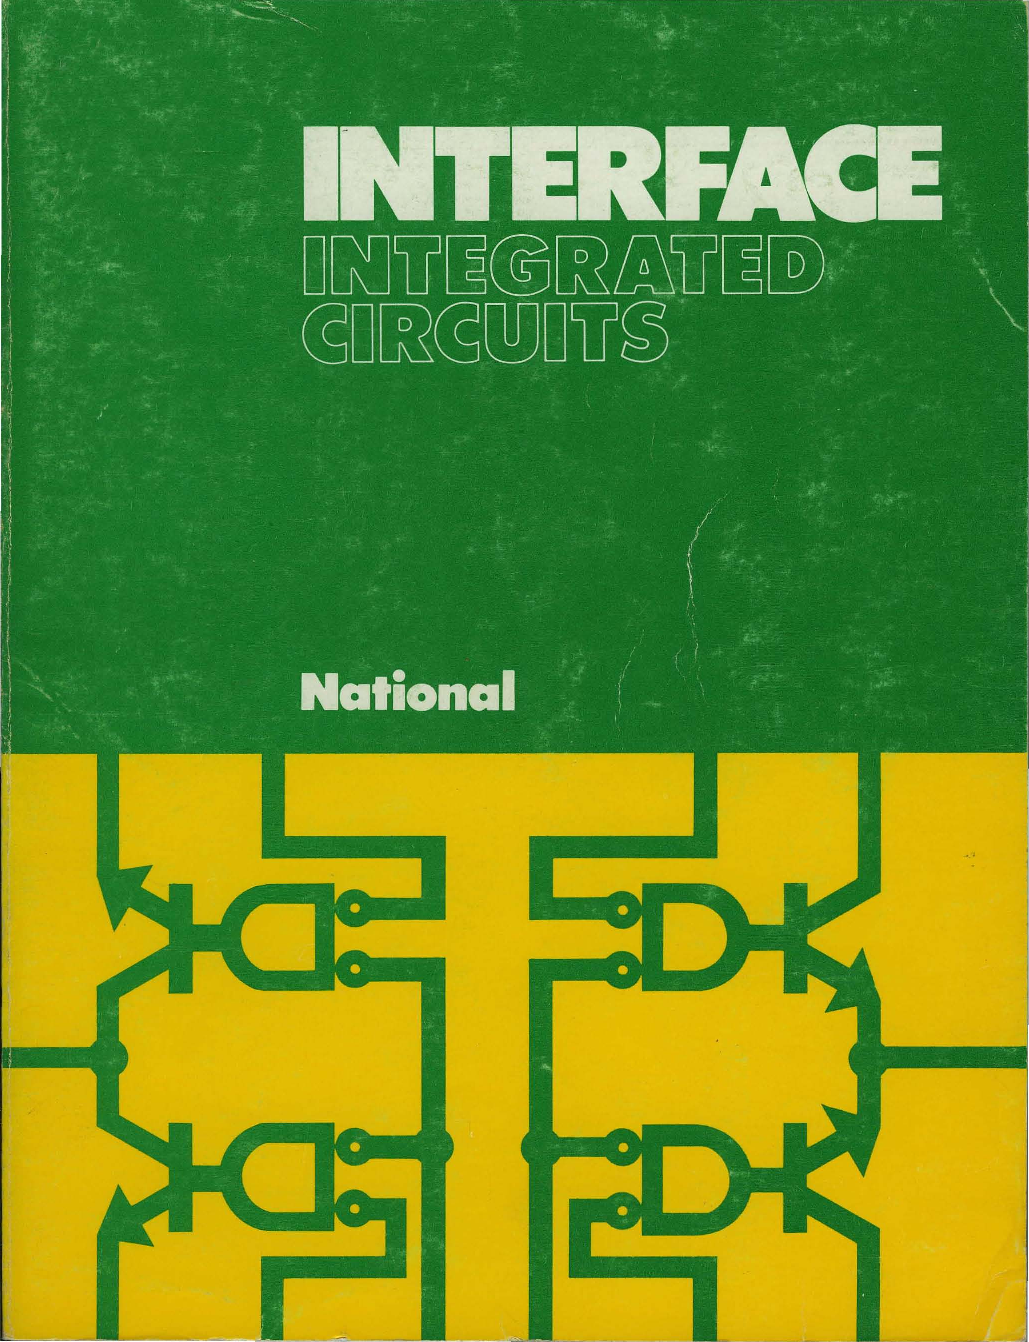 1974 National Interface Integrated Circuits 1hz Clock Generator With Chip On Board Cob